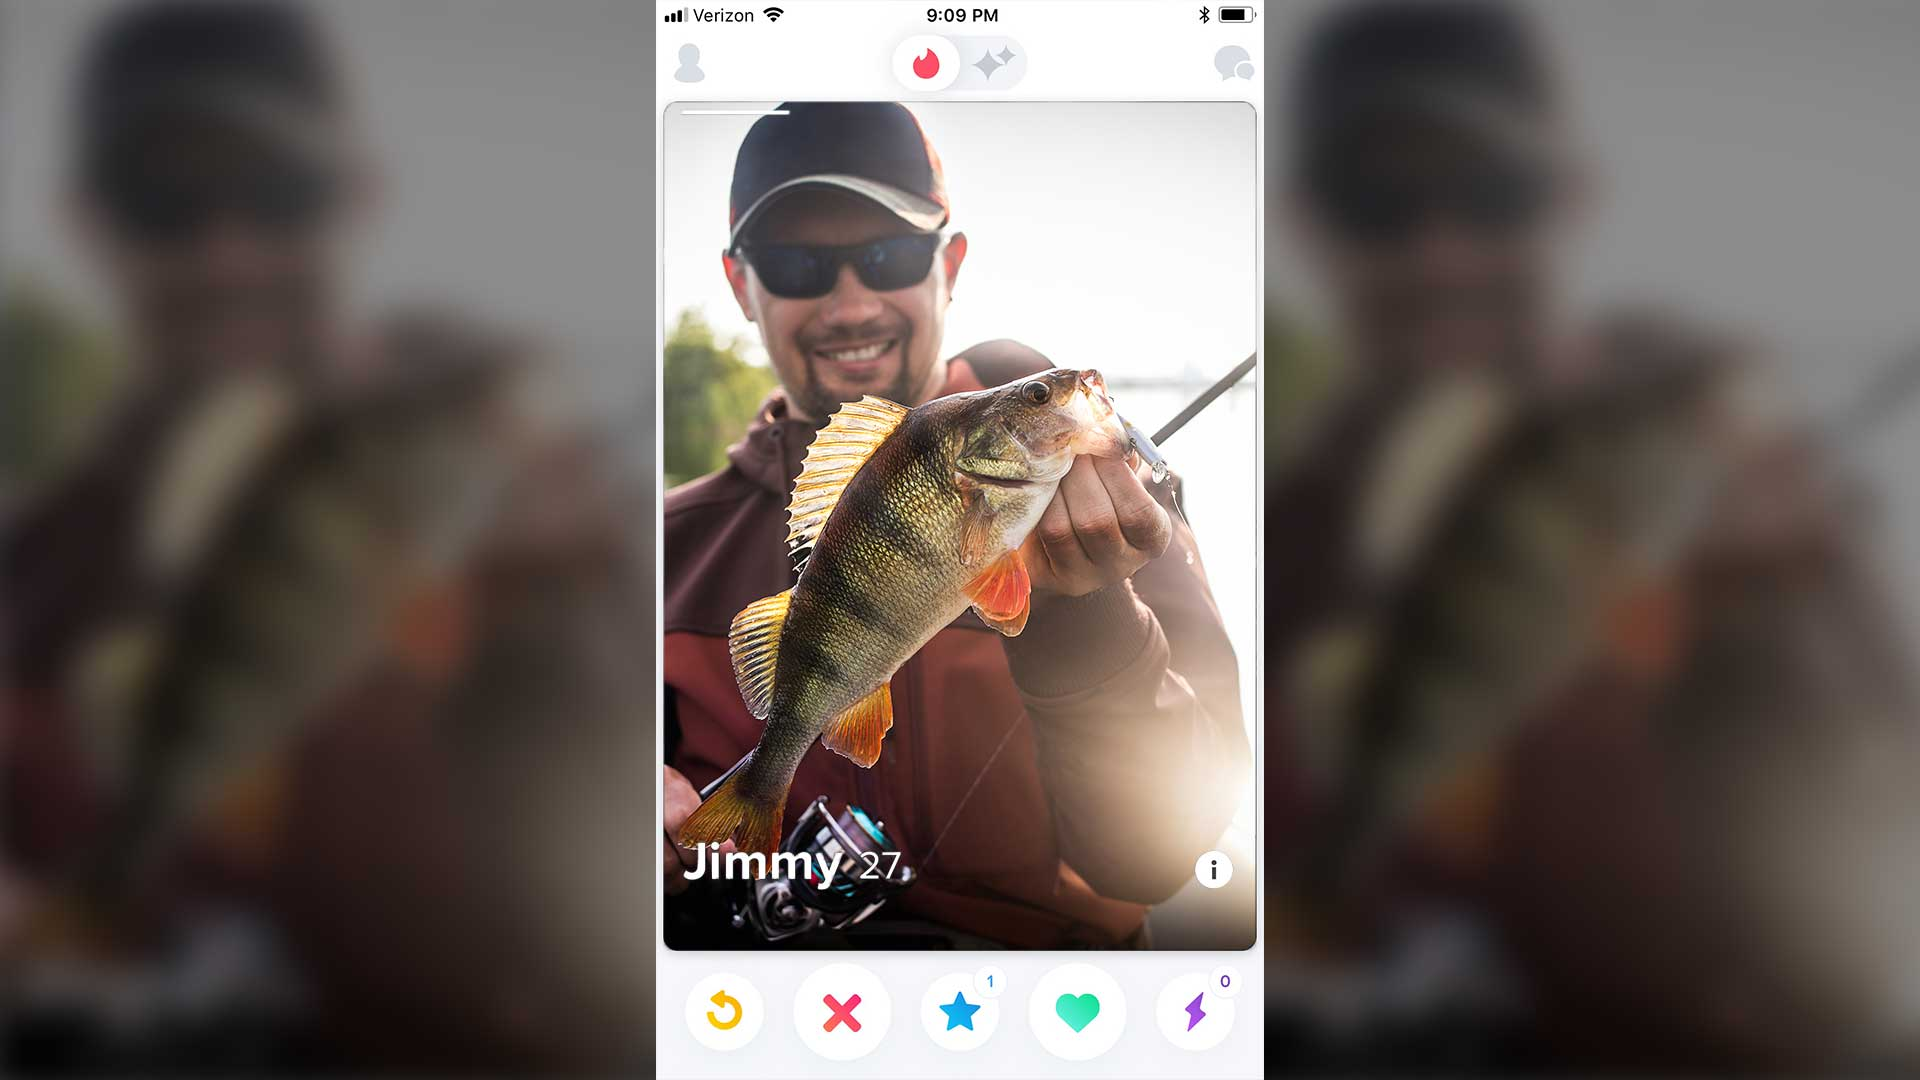 Dead-Fish-In-Tinder-Profile-Disappointed-Its-Not-Getting-More-Matches.jpg